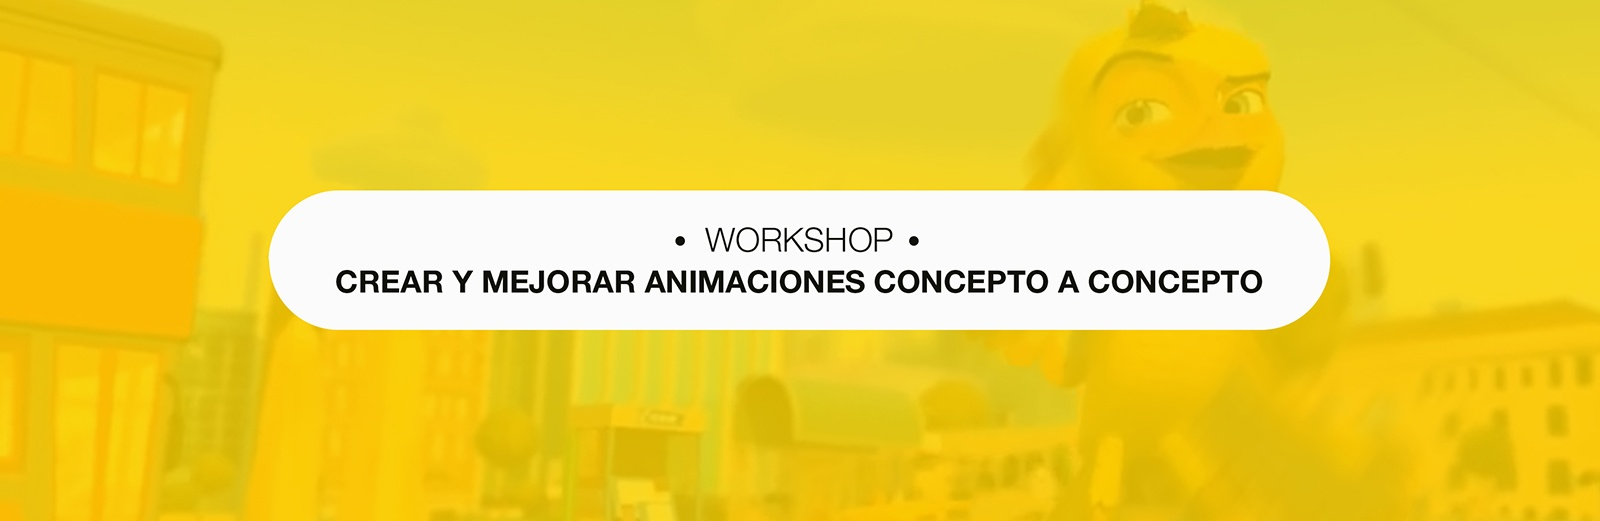 Workshop-Animacion-Alberto-Sanz-Web-cabecera-2-Copy